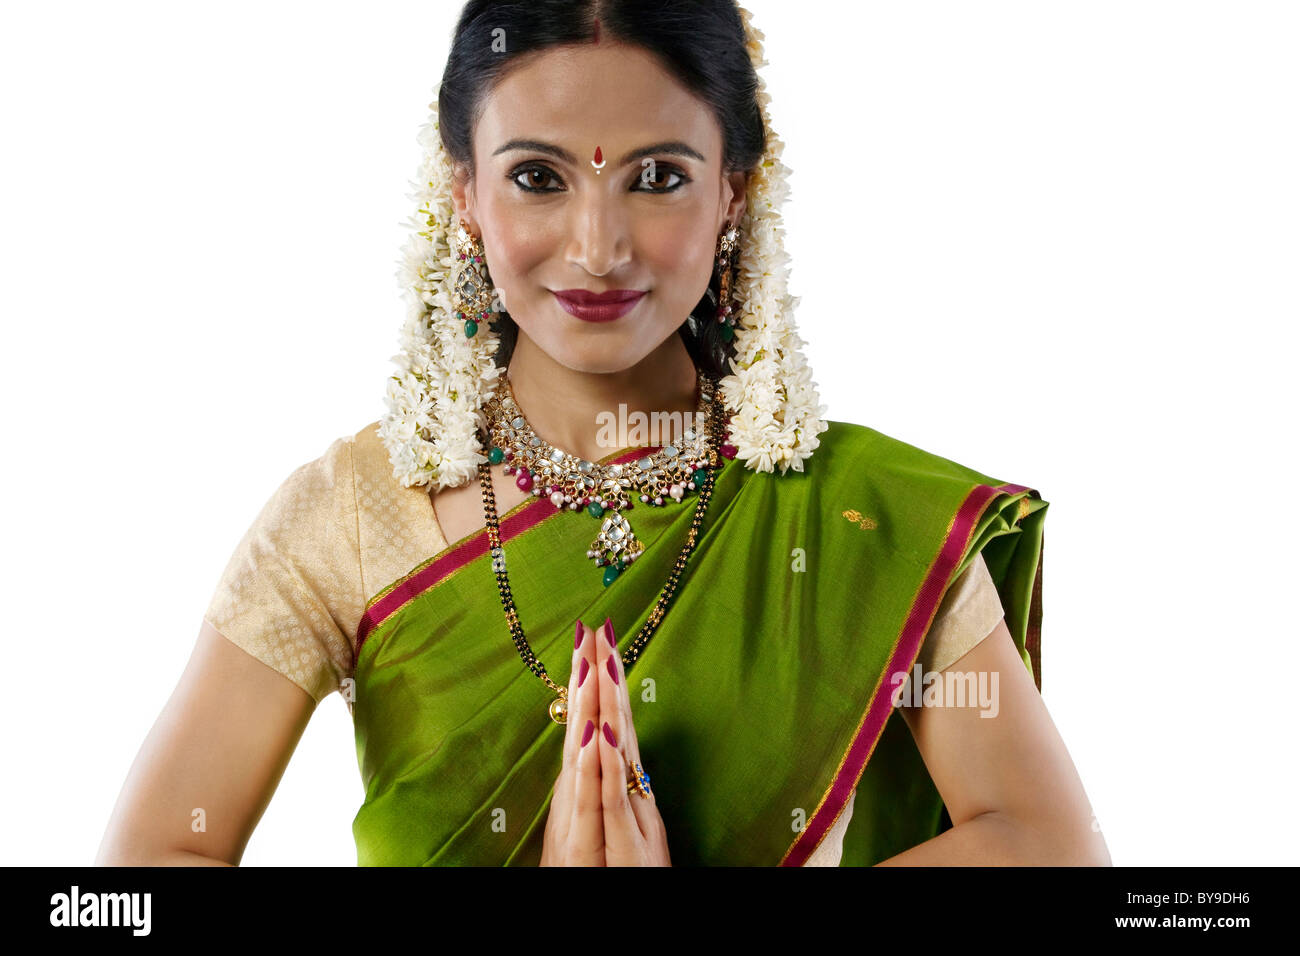 South Indian woman greeting - Stock Image